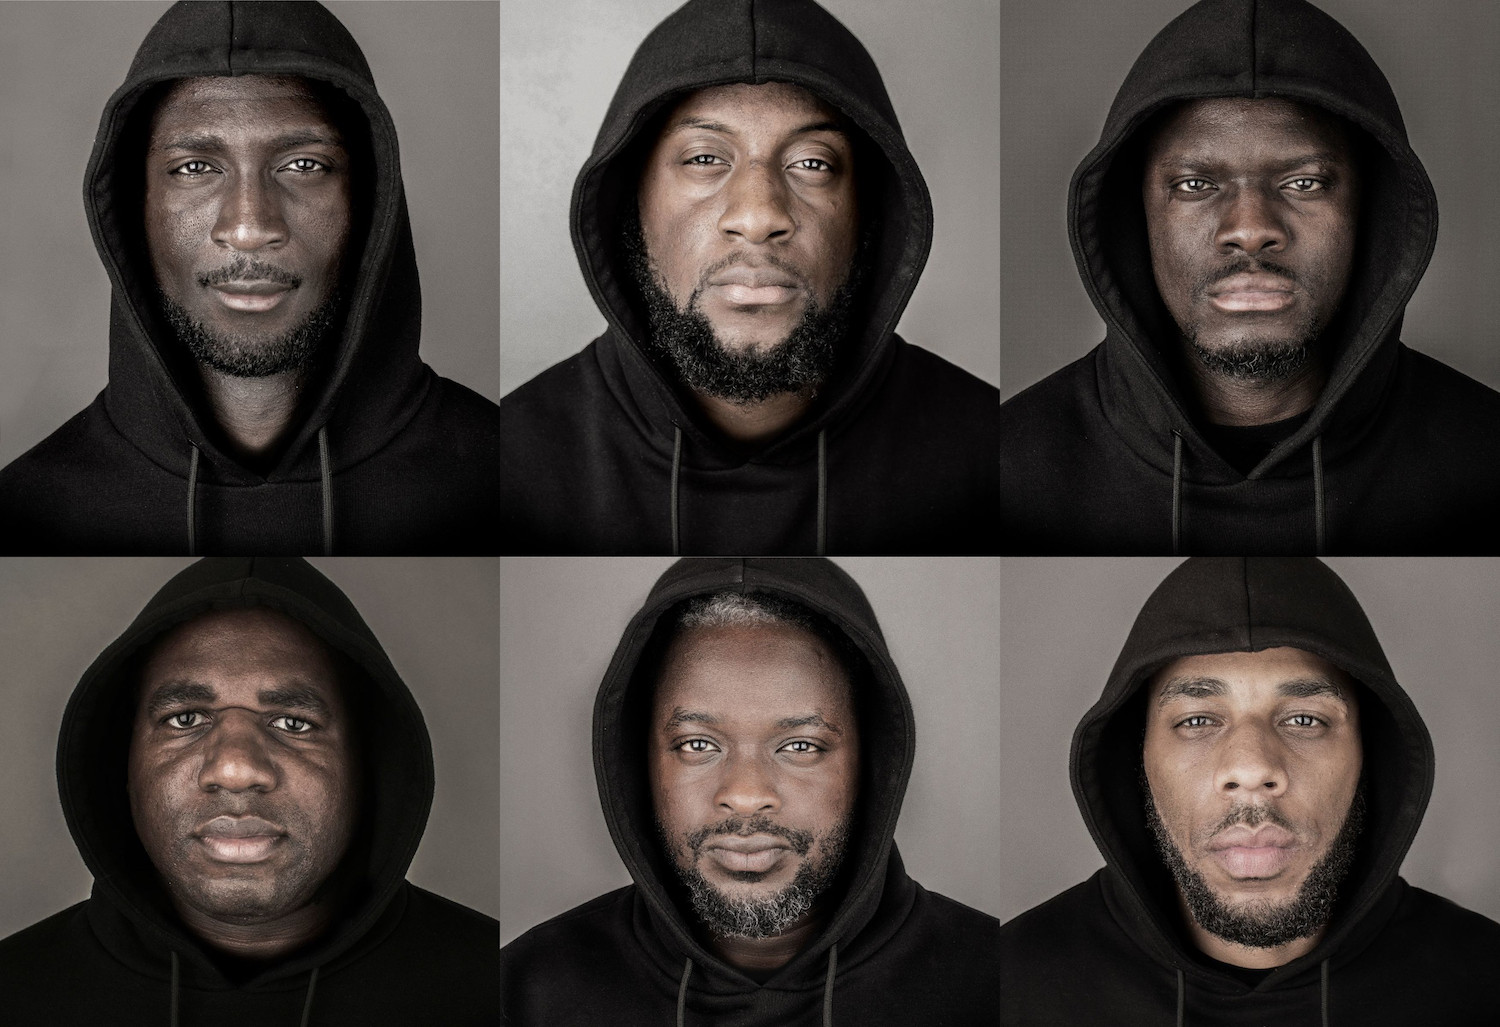 'I am not a stereotype'. The photo campaign that celebrates black men